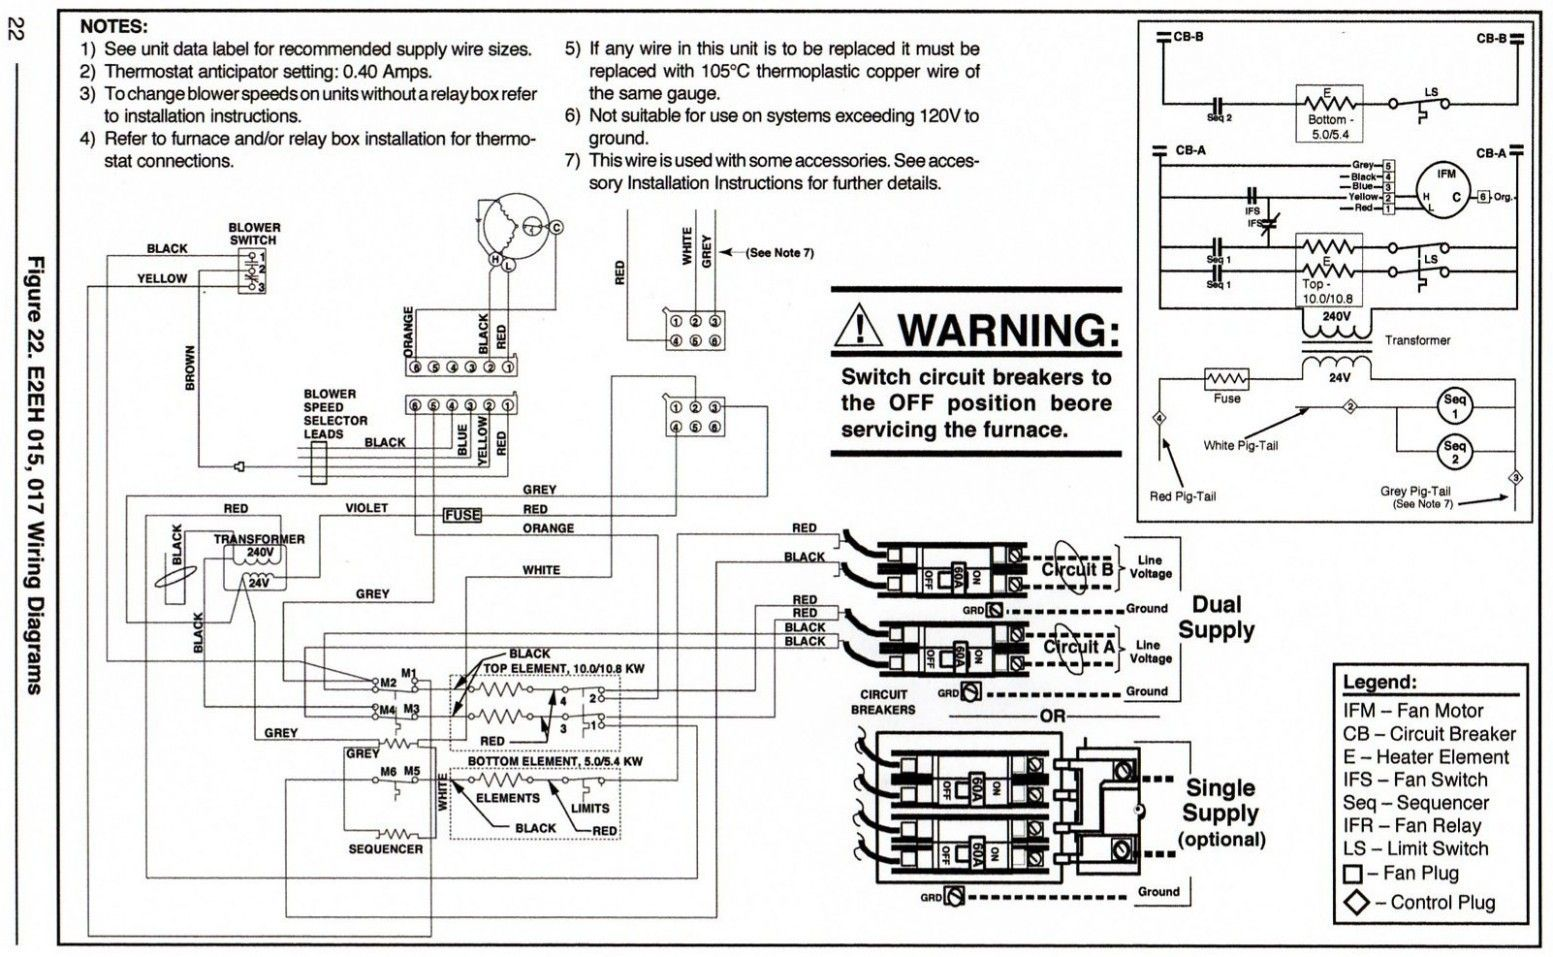 Nordyne E2eb 015ha Wiring Diagram Intertherm Sequencer ... on intertherm air conditioner wiring diagram, intertherm furnace diagram, intertherm electric heater wiring, intertherm heaters wiring diagrams,